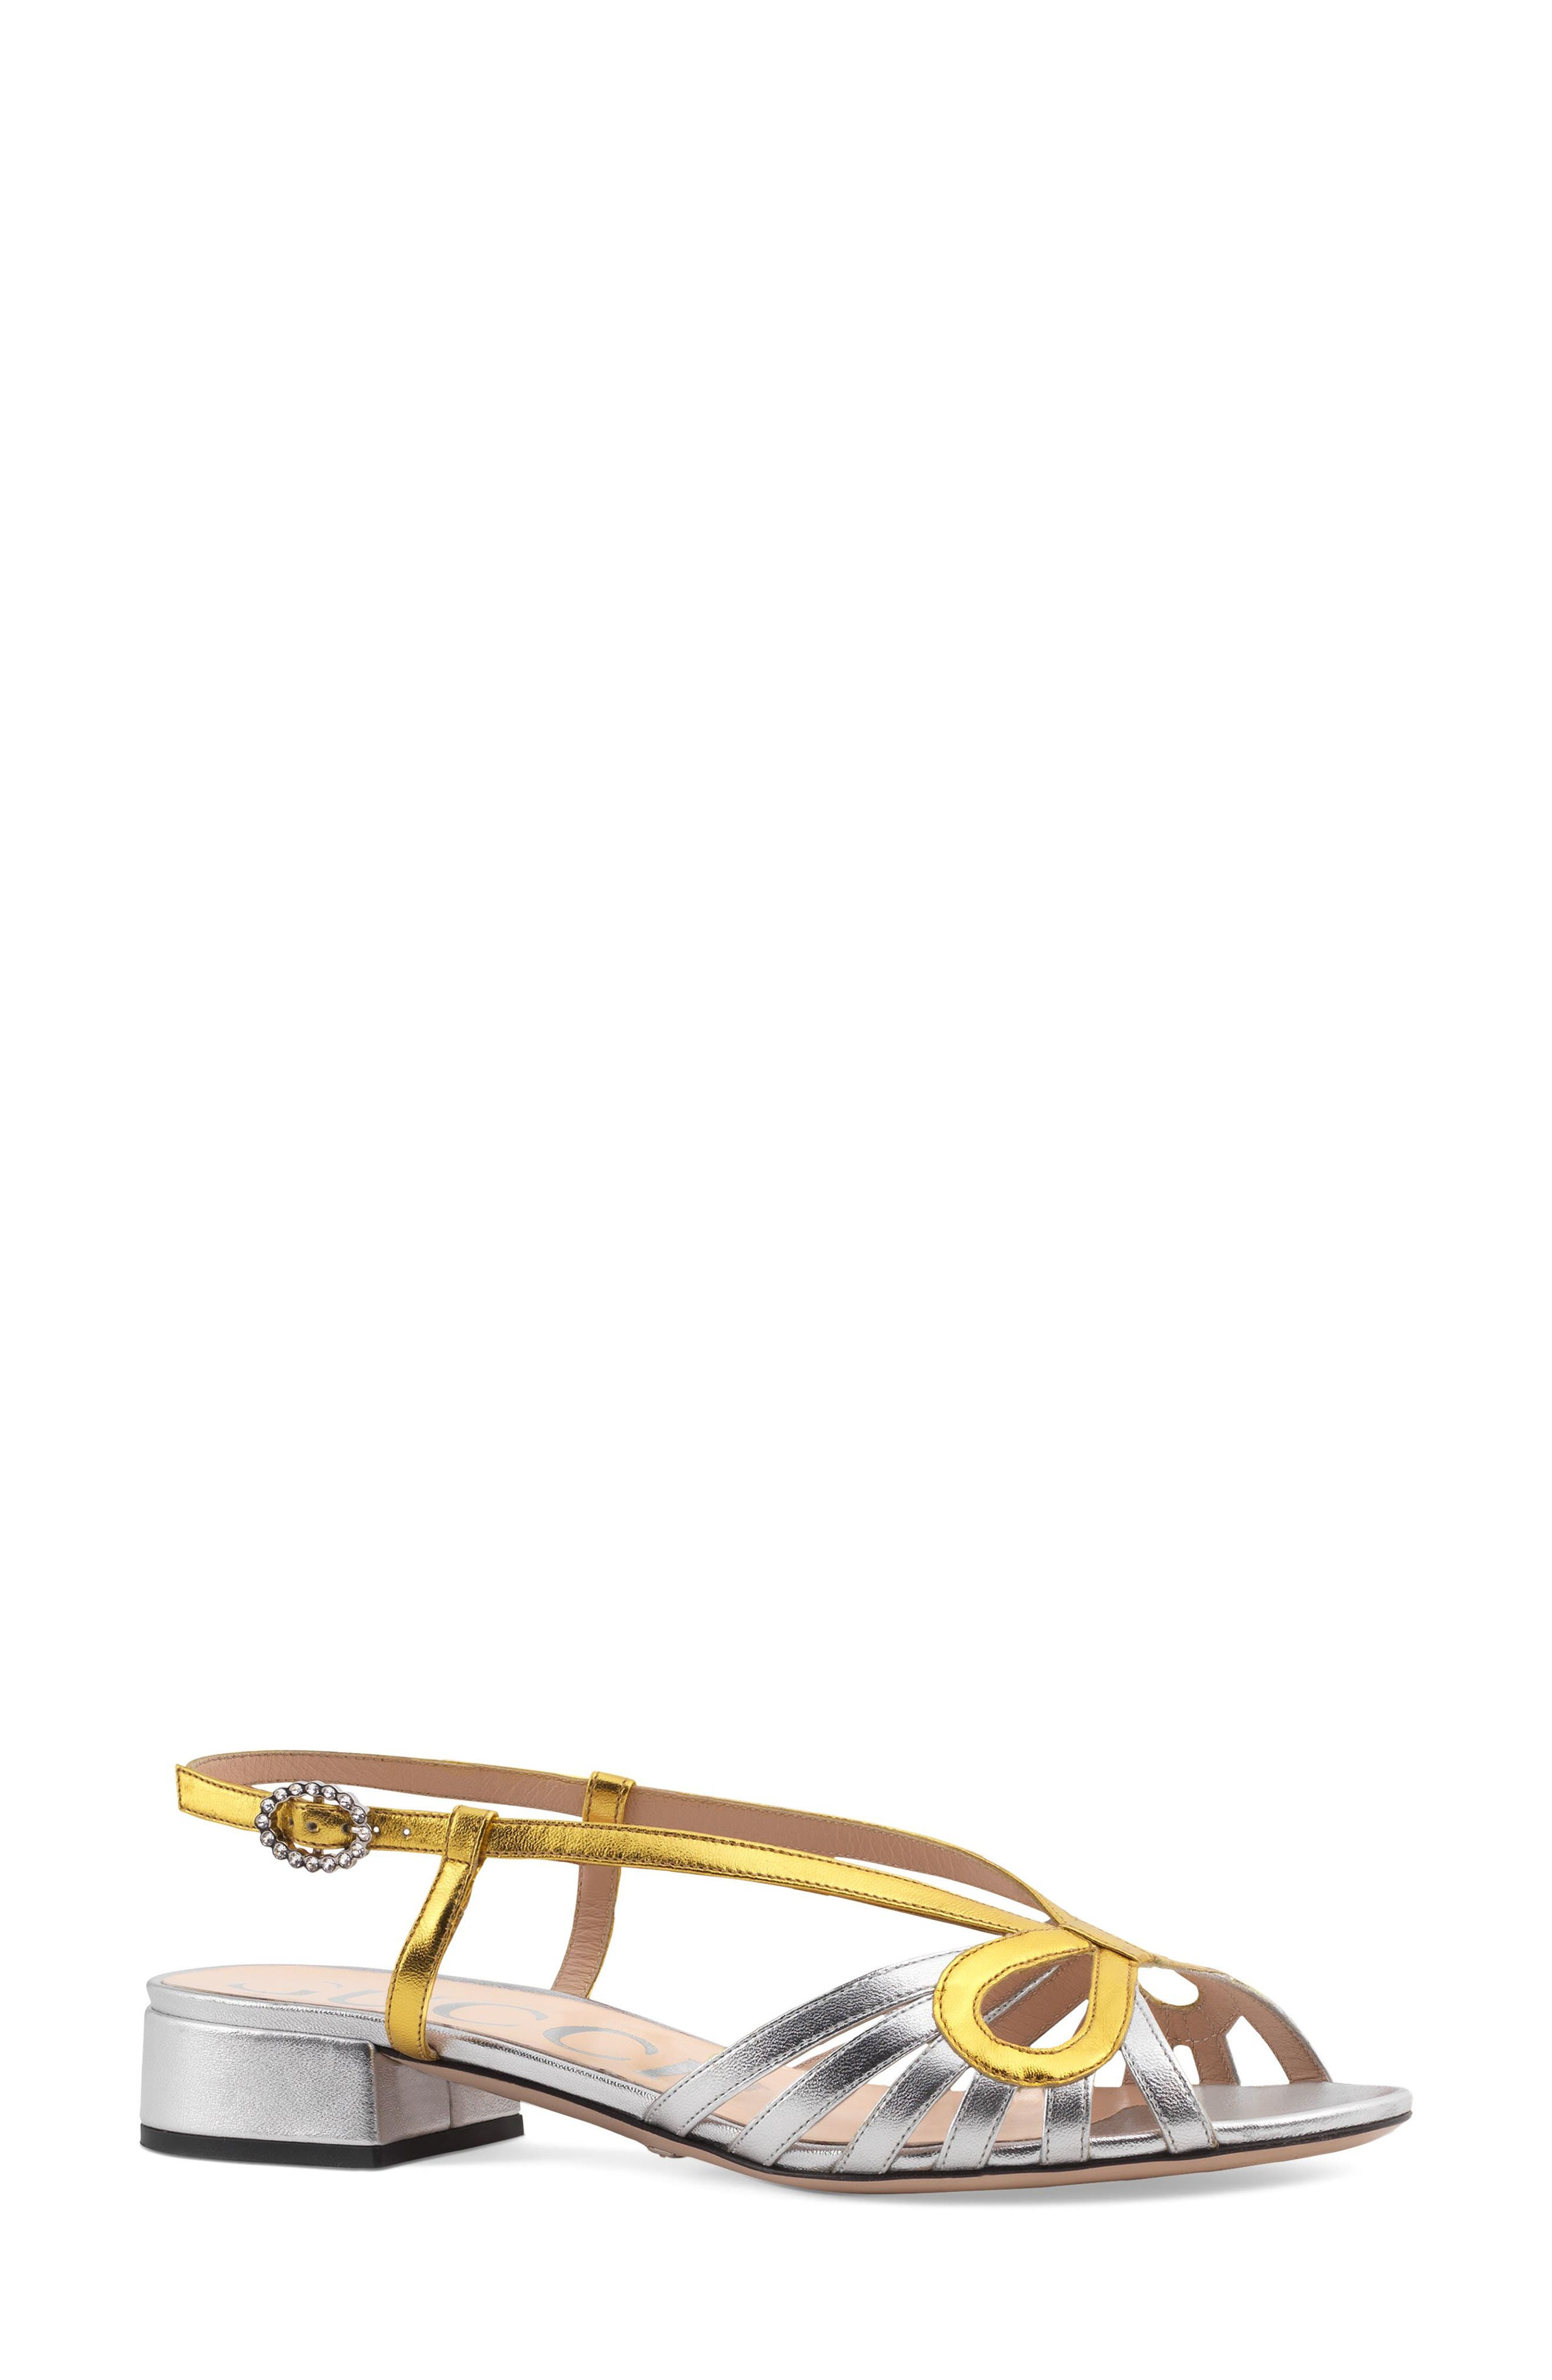 GUCCI Zephyra Sandal, Main, color, ARGENTO LEATHER